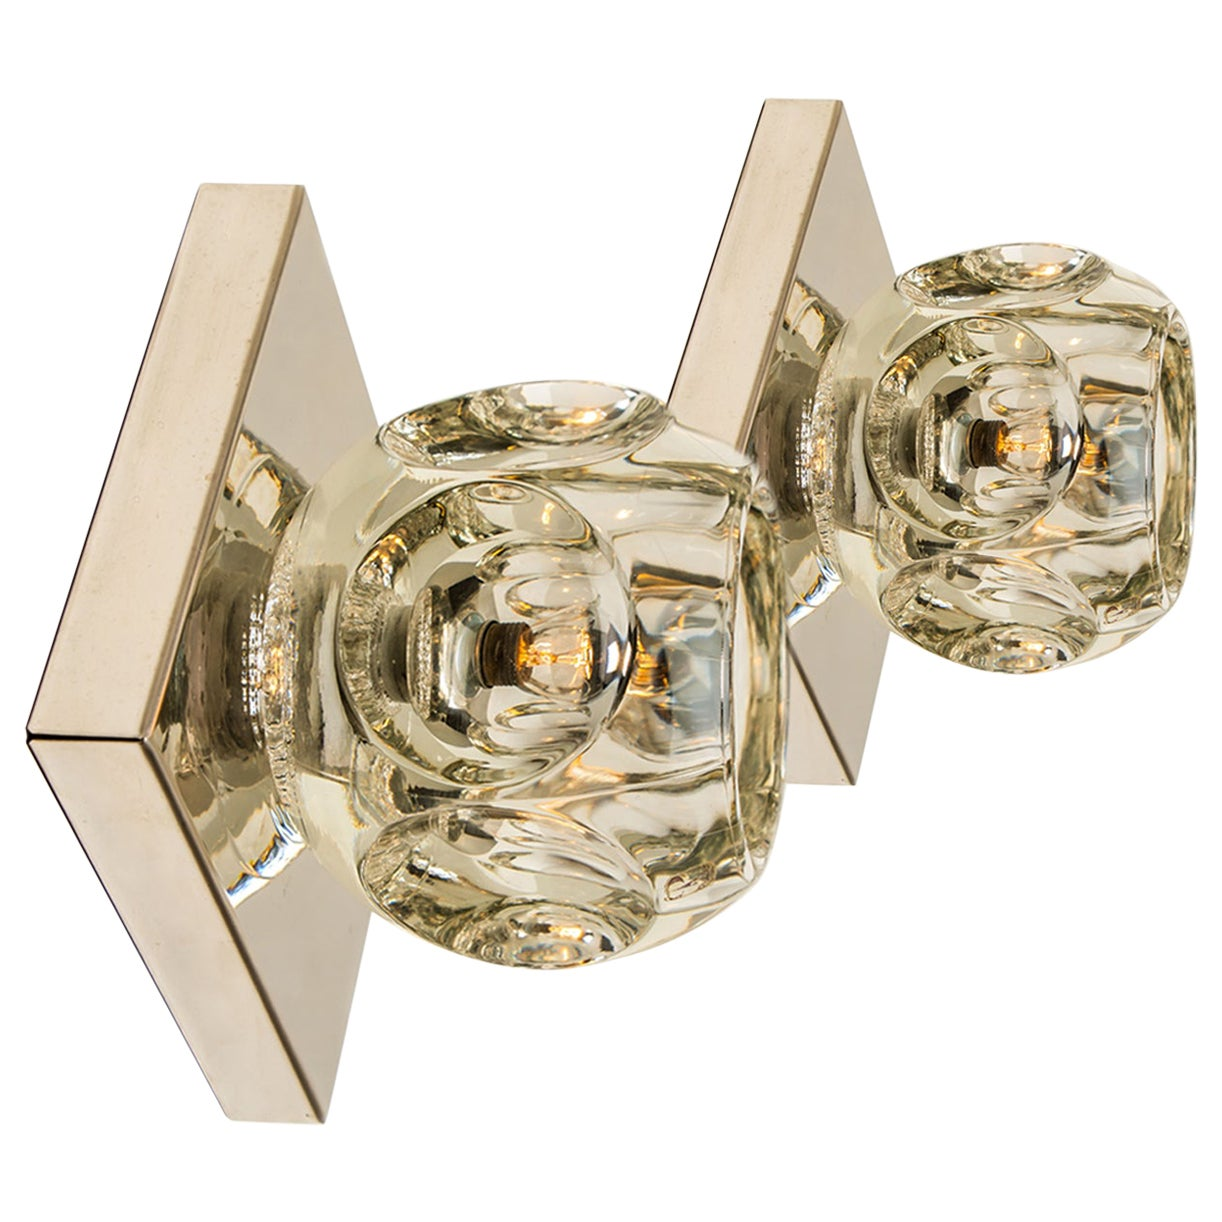 Pair of Glass Chrome Wall Sconces Flush Mounts Cosack Lights, Germany, 1970s